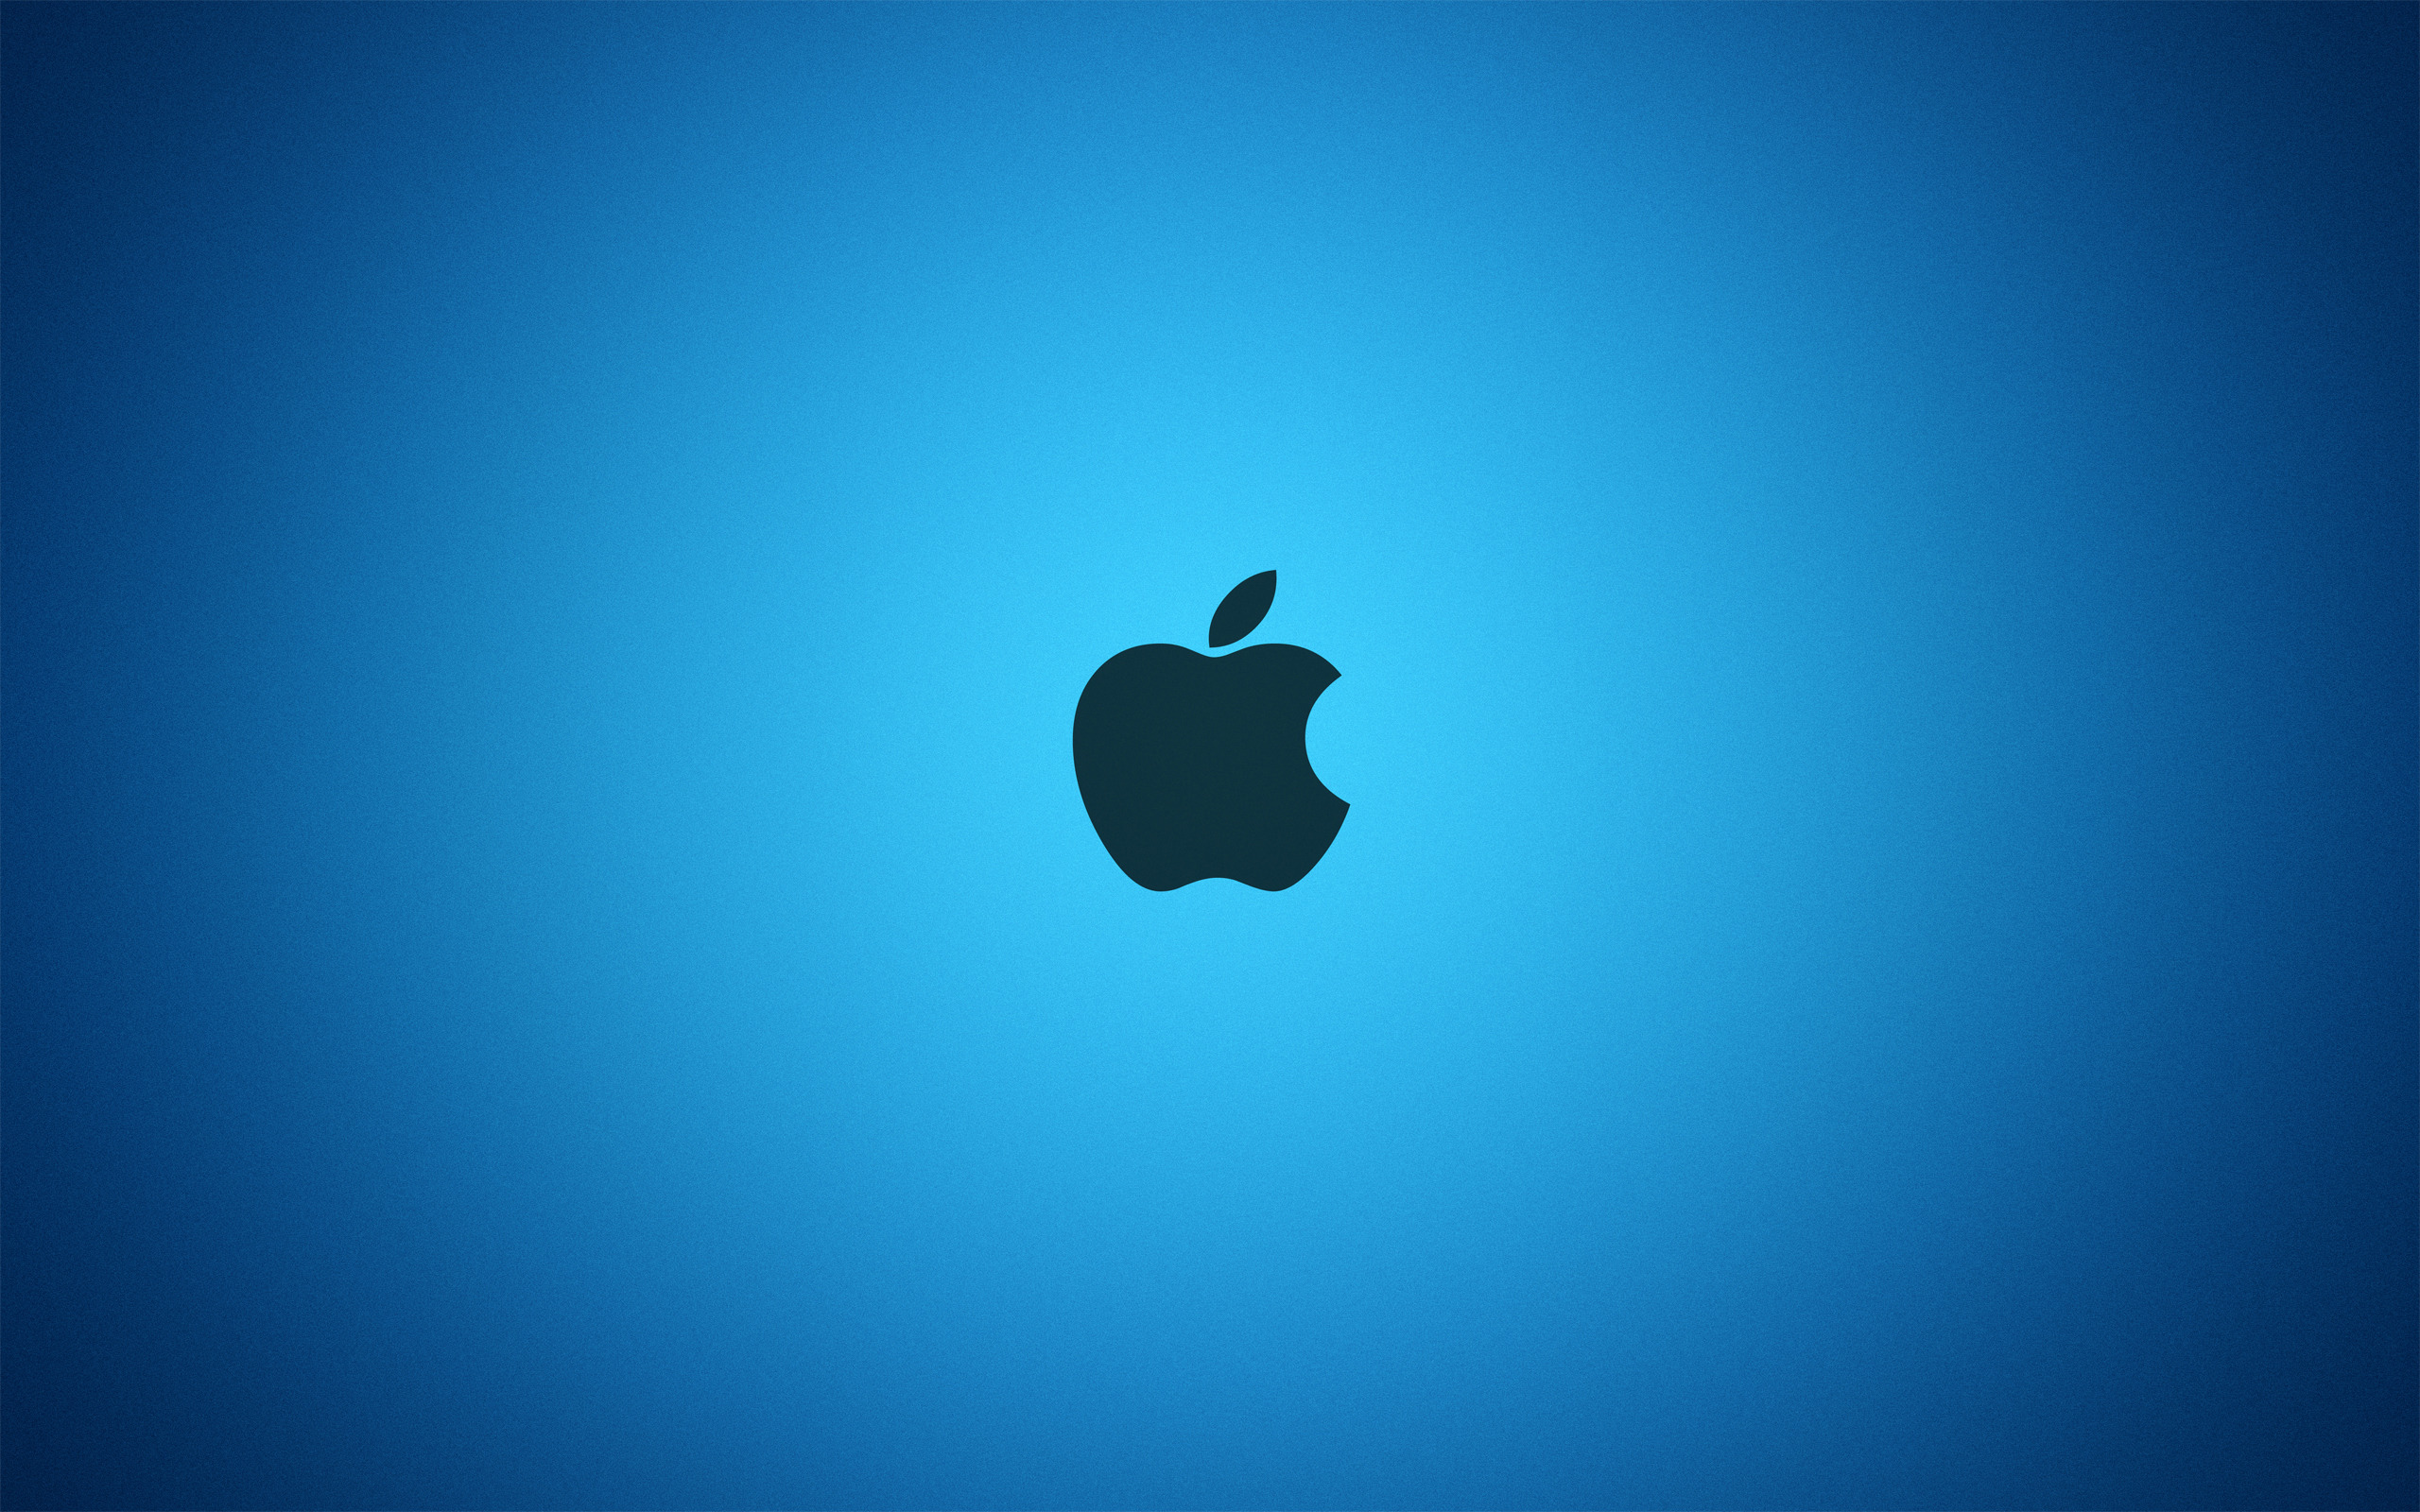 Apple Id Wallpaper